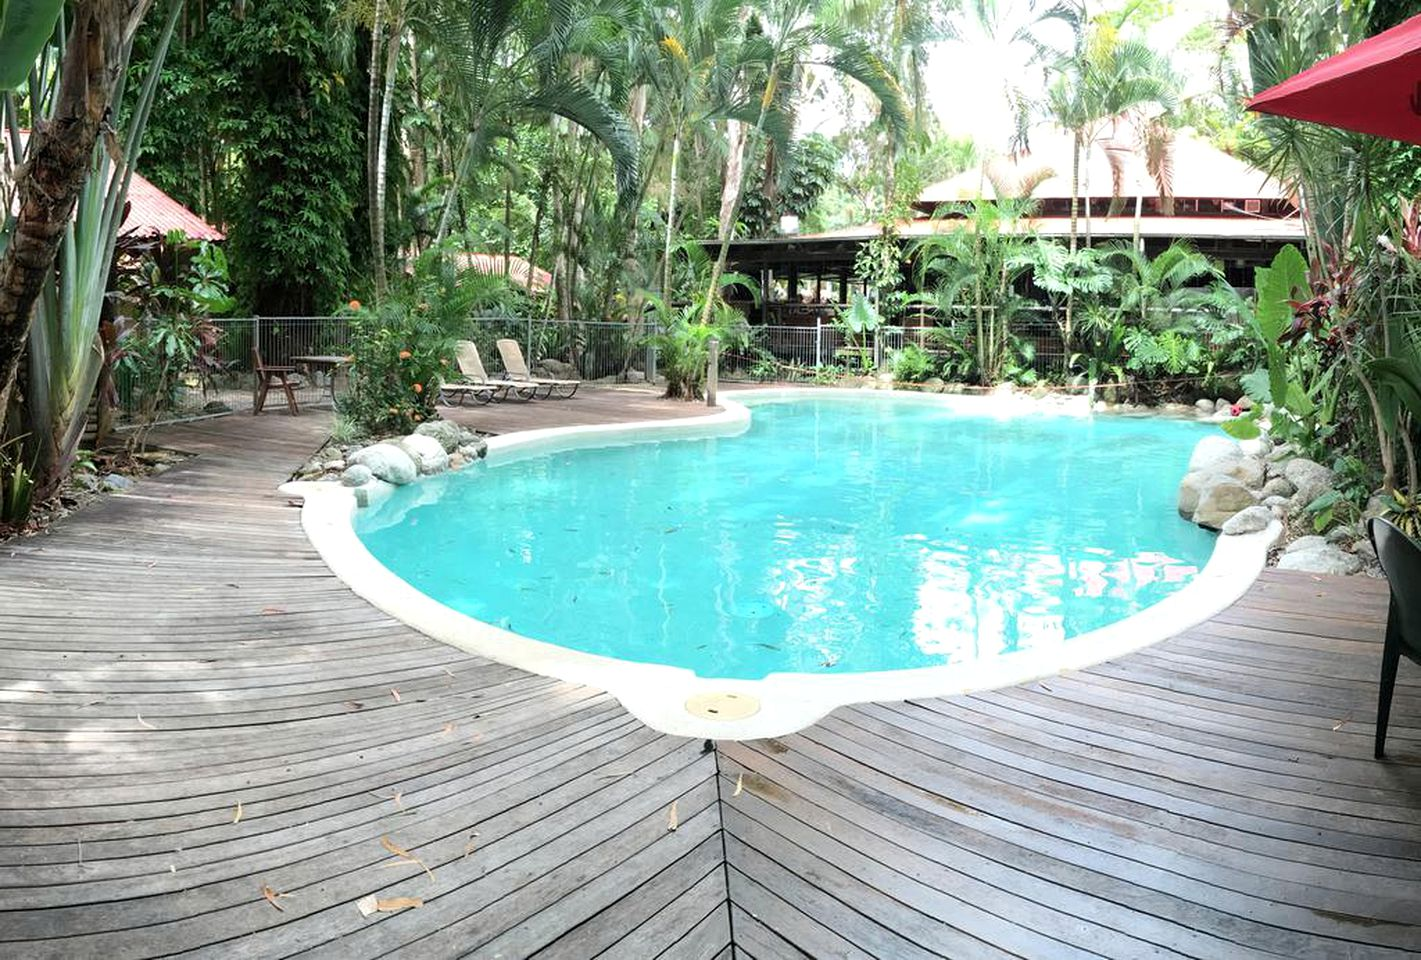 Nature Lodges (Cape Tribulation, Queensland, Australia)